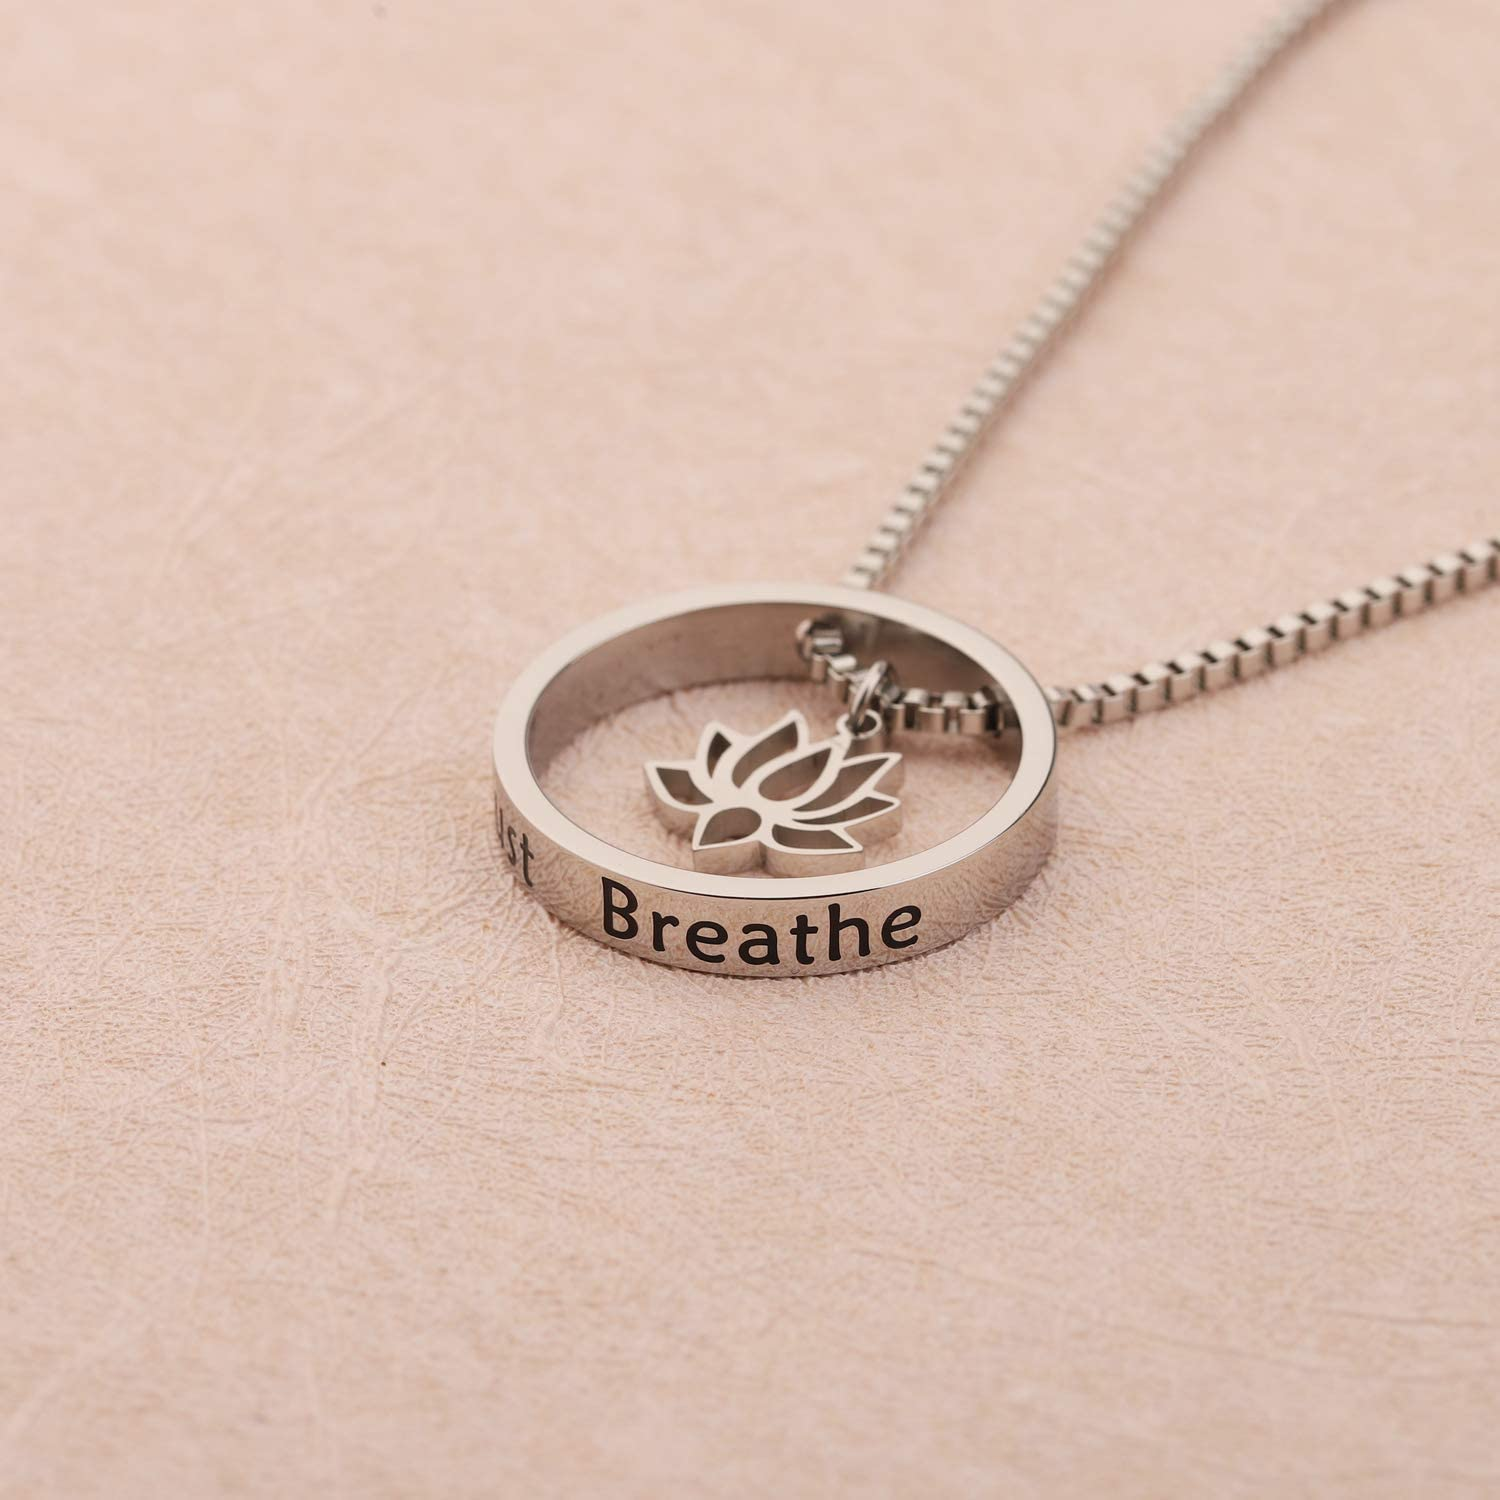 WUSUANED Lotus Flower Necklace Just Breathe Yoga Jewelry Gift for Women Girls